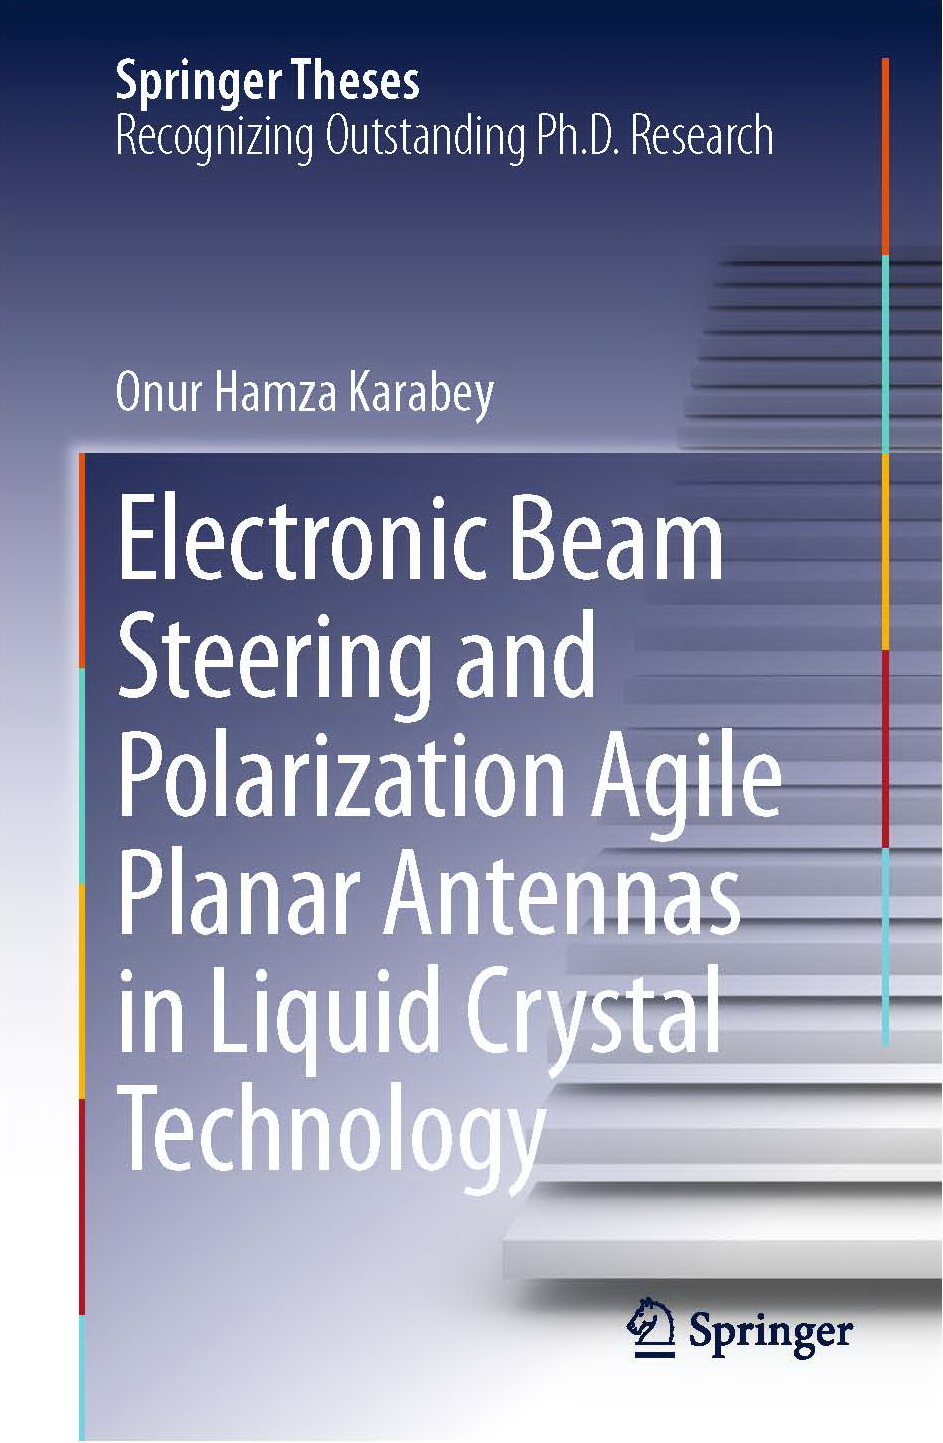 Electronic Beam Steering and Polarization Agile Planar Antennas in Liquid Crystal Technology